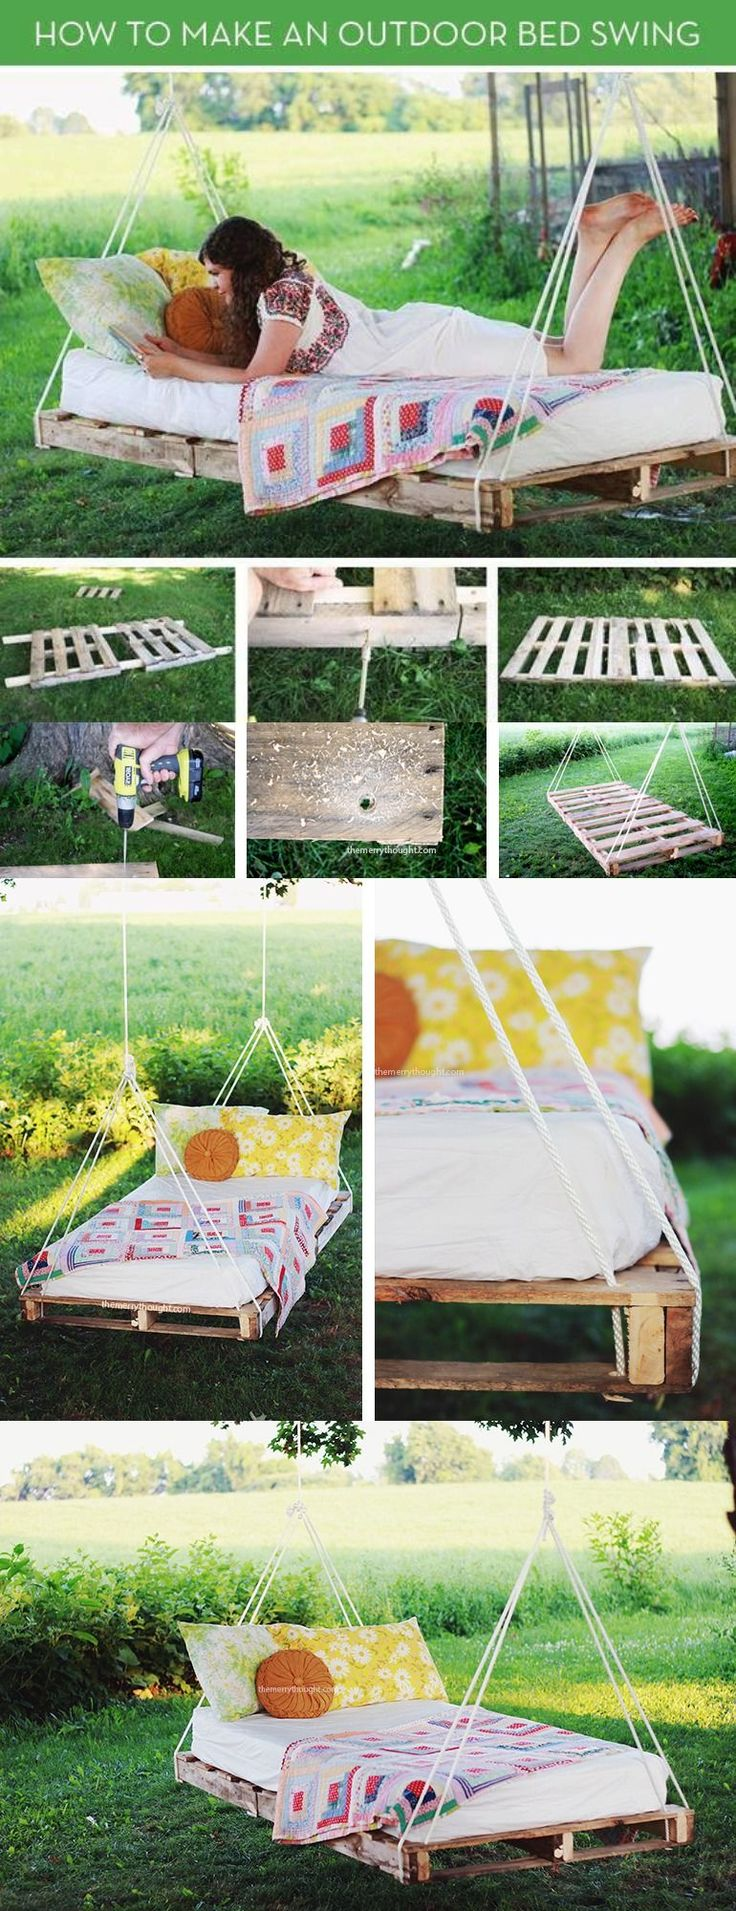 Best 20+ Pallet swing beds ideas on Pinterest | Pallet swings ...